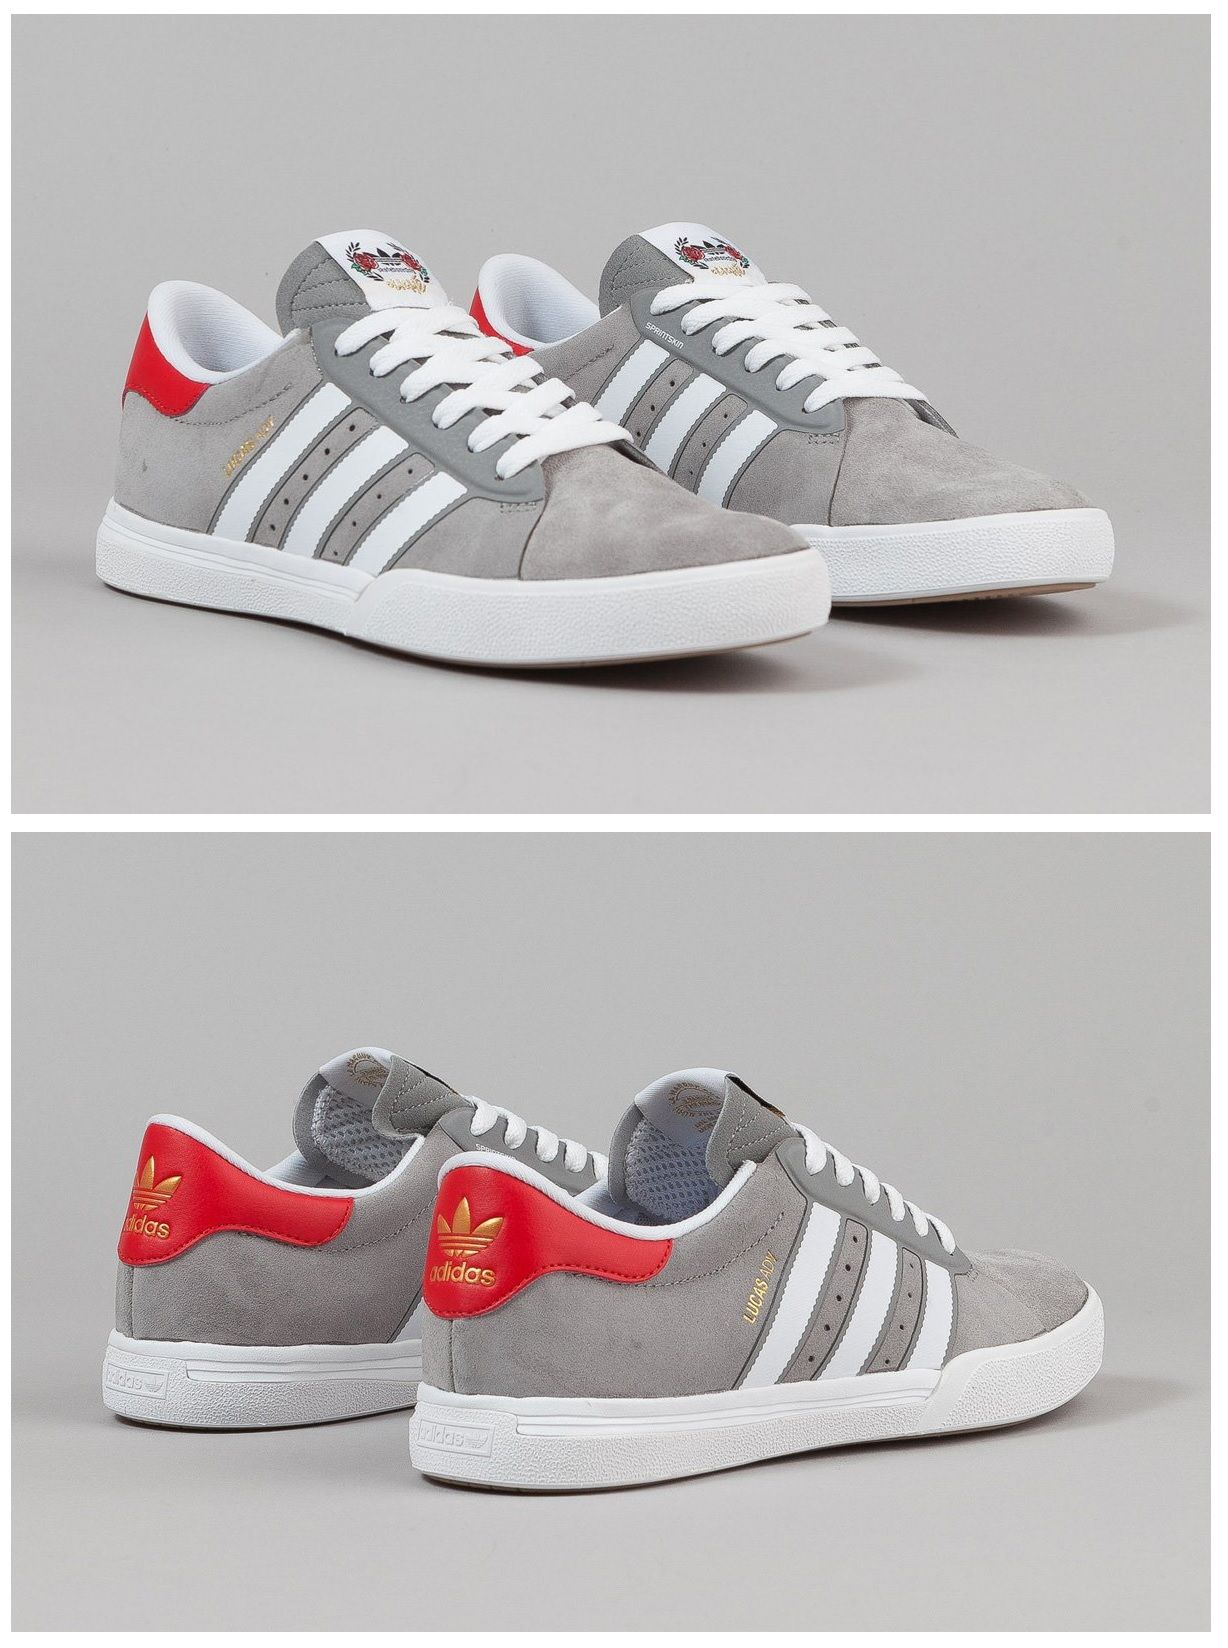 Adidas X Cliche Lucas ADV Shoes Grey White Scarlet